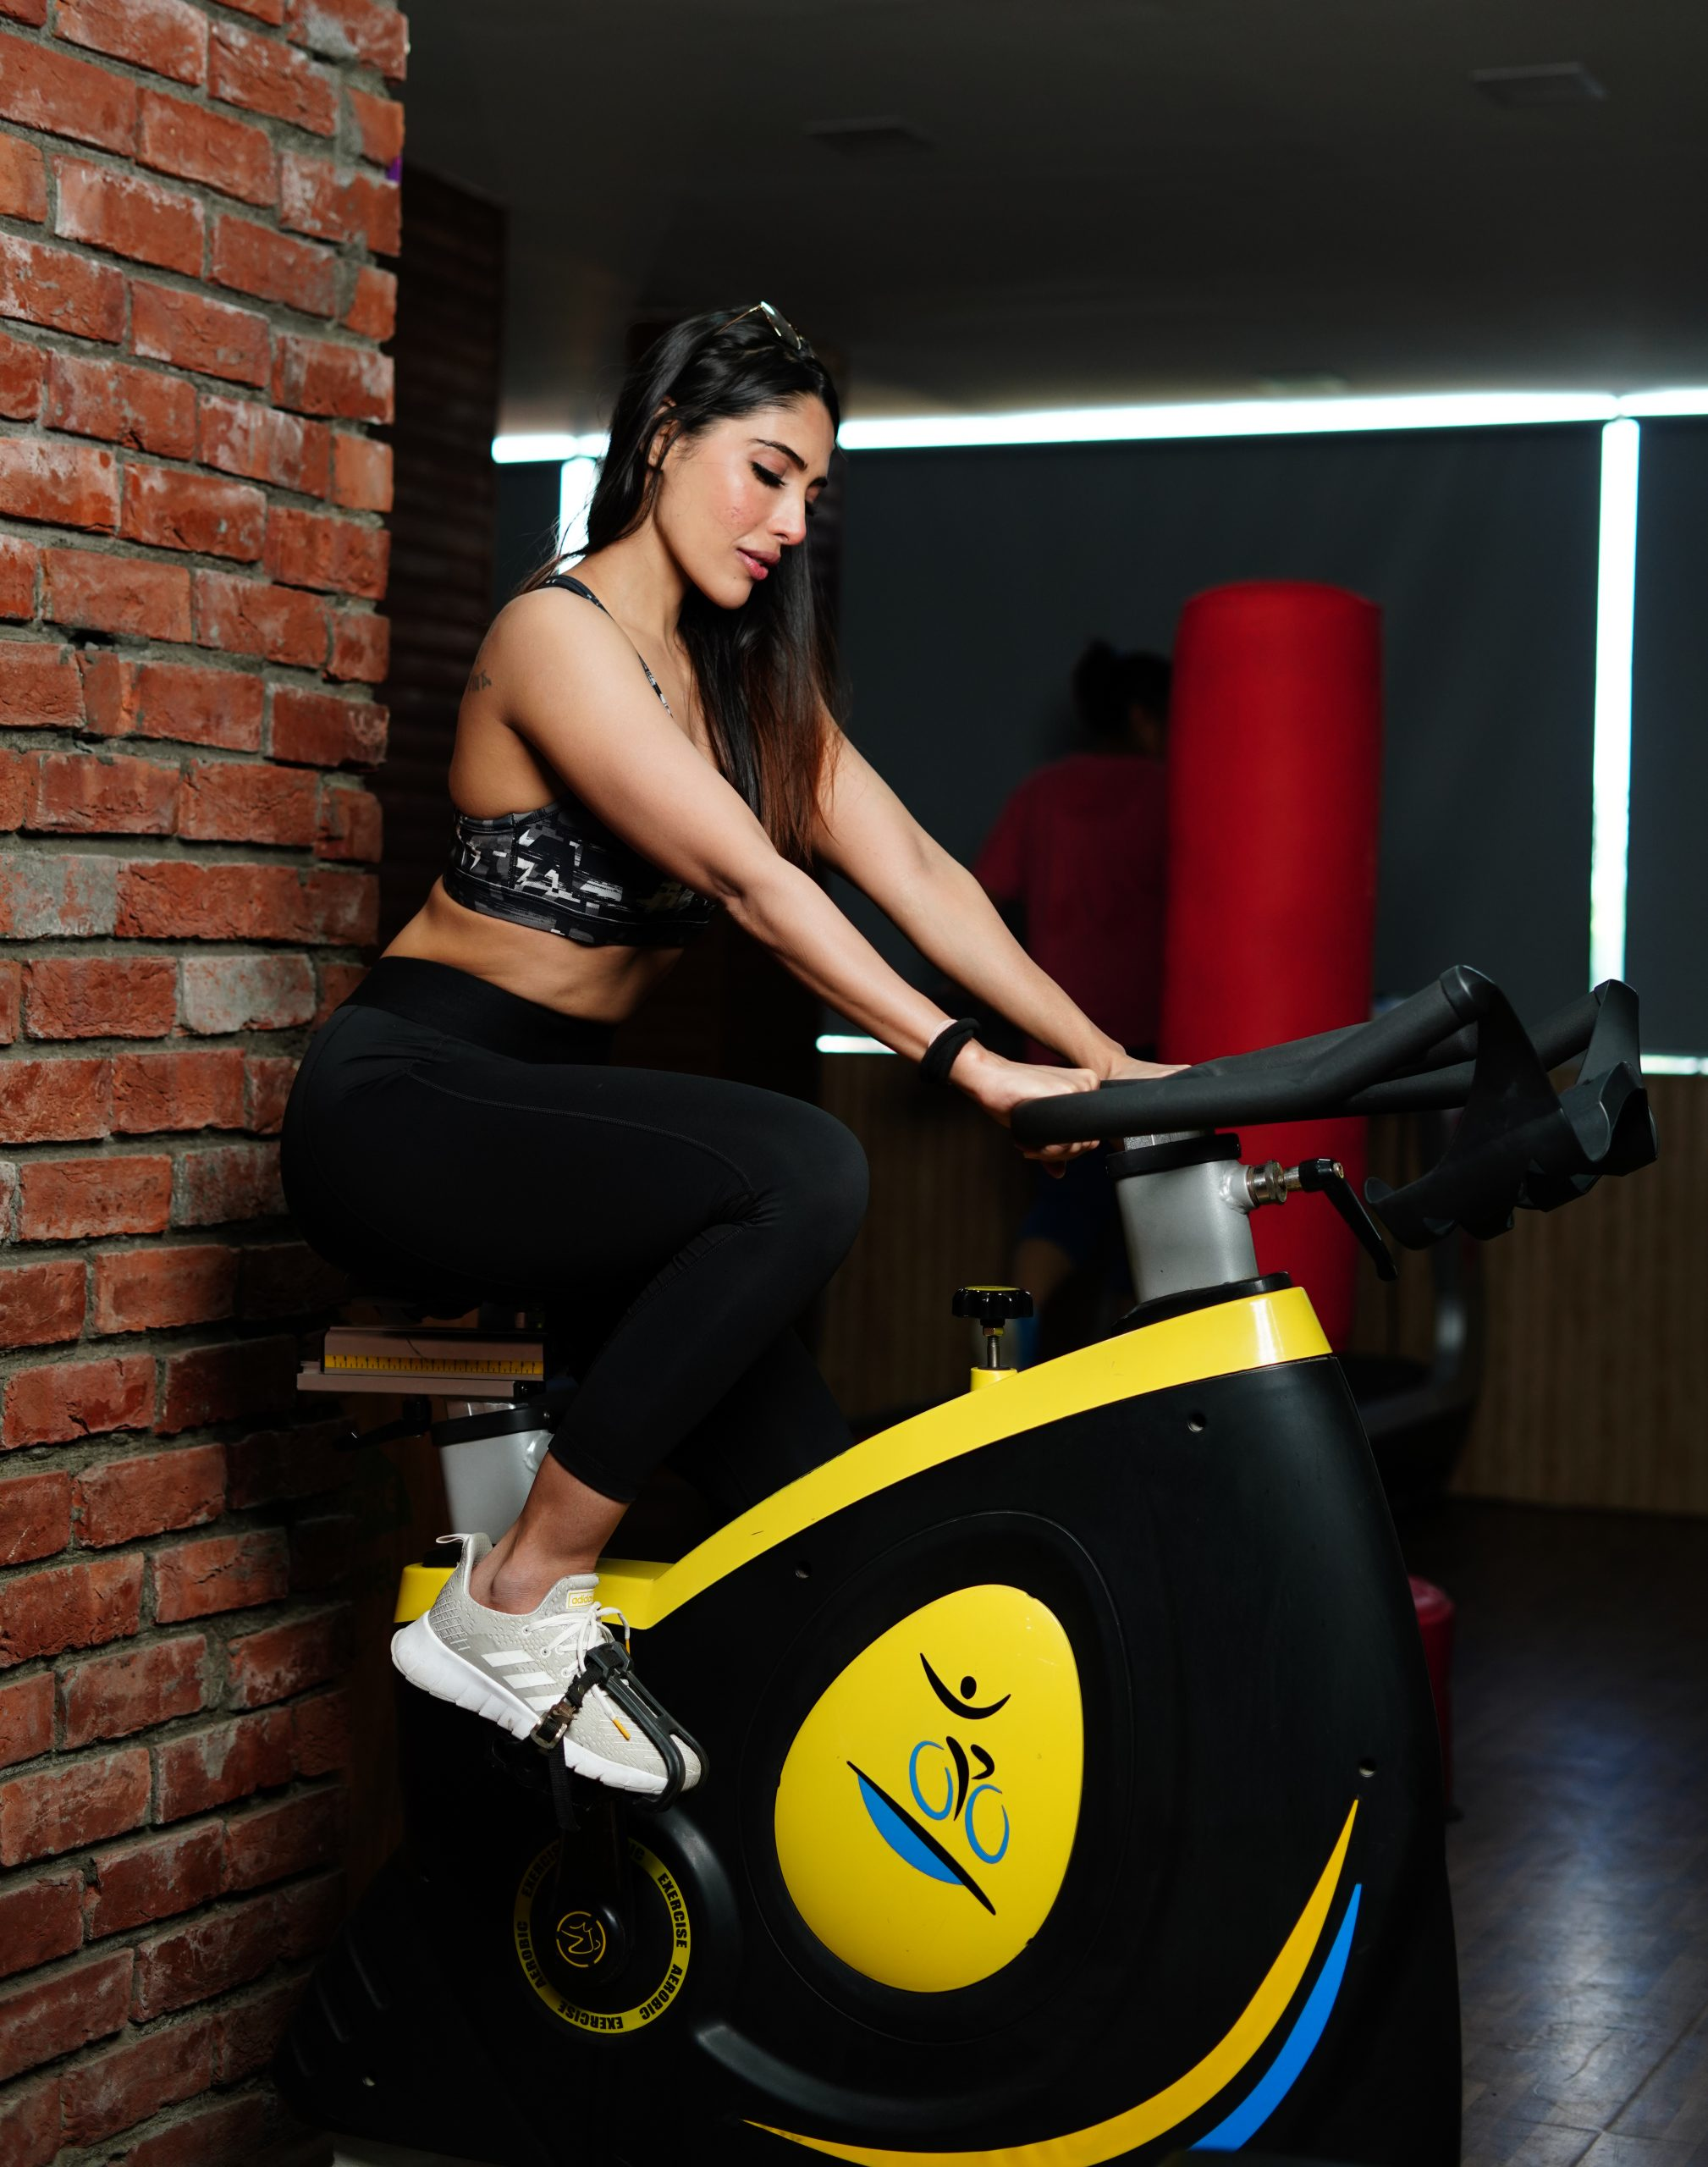 Fitness woman exercises on cycle in gym